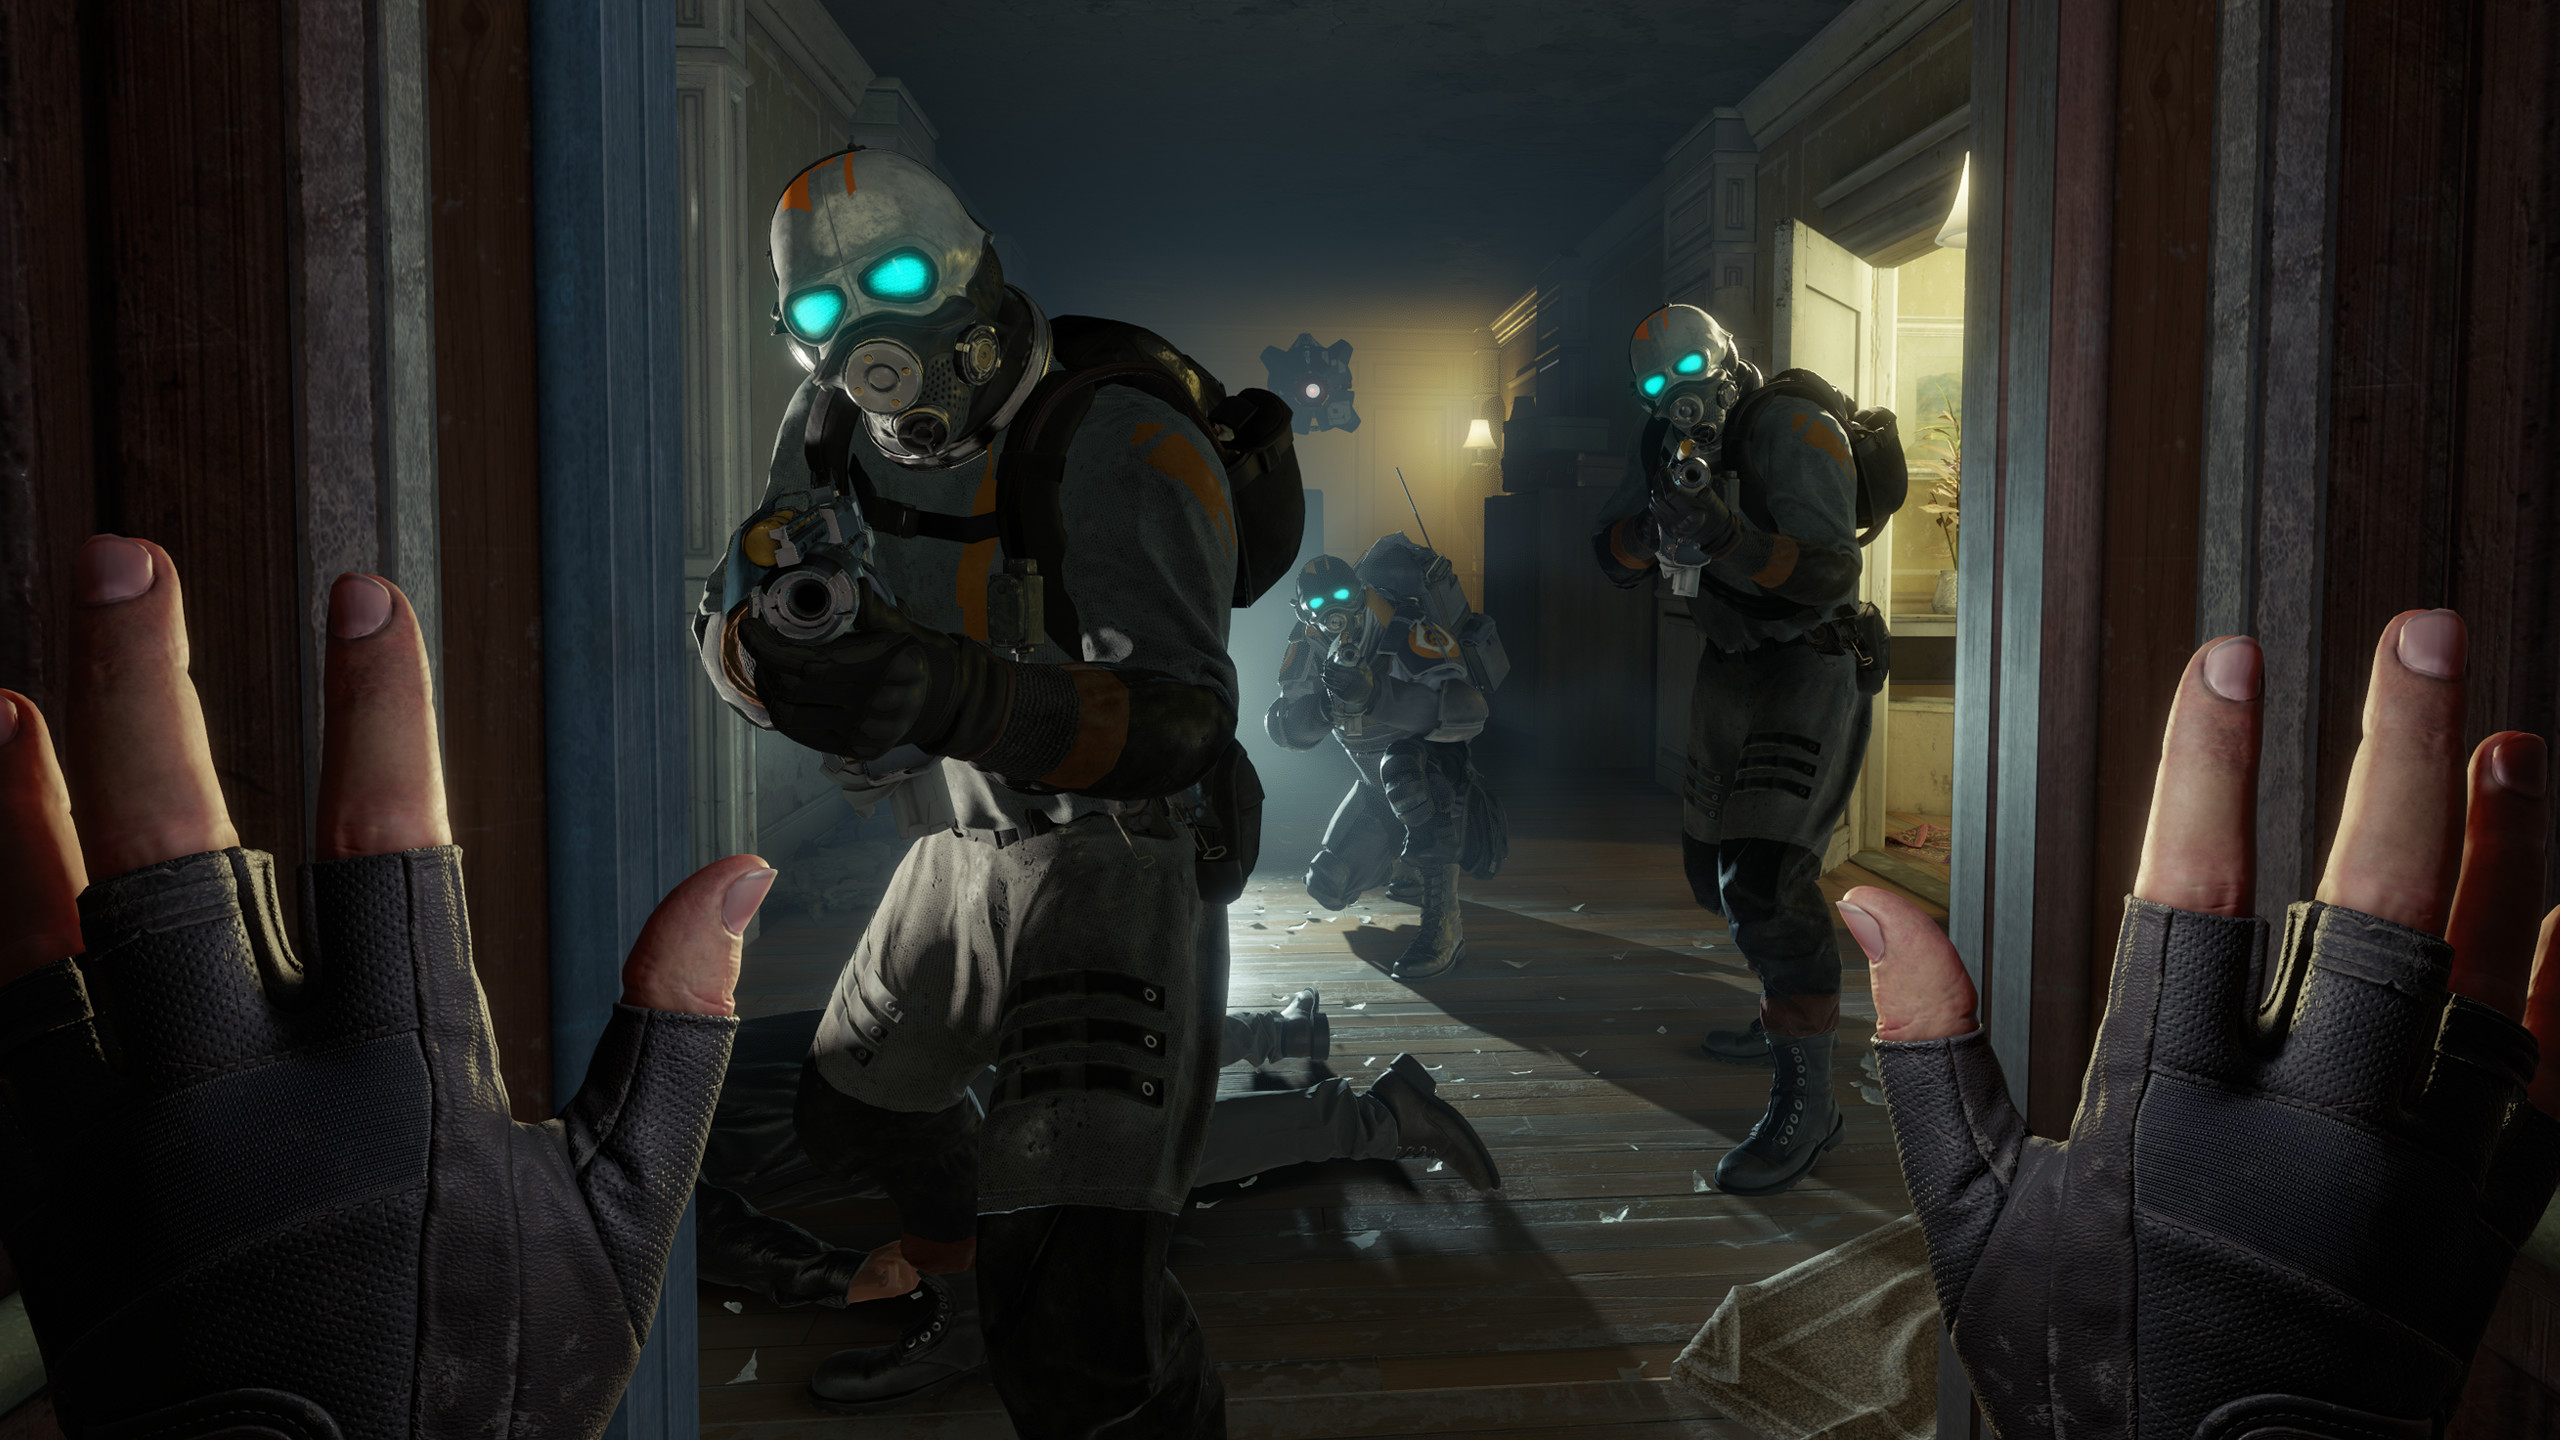 Valve knows someone's already working to remove VR from Half-Life: Alyx screenshot